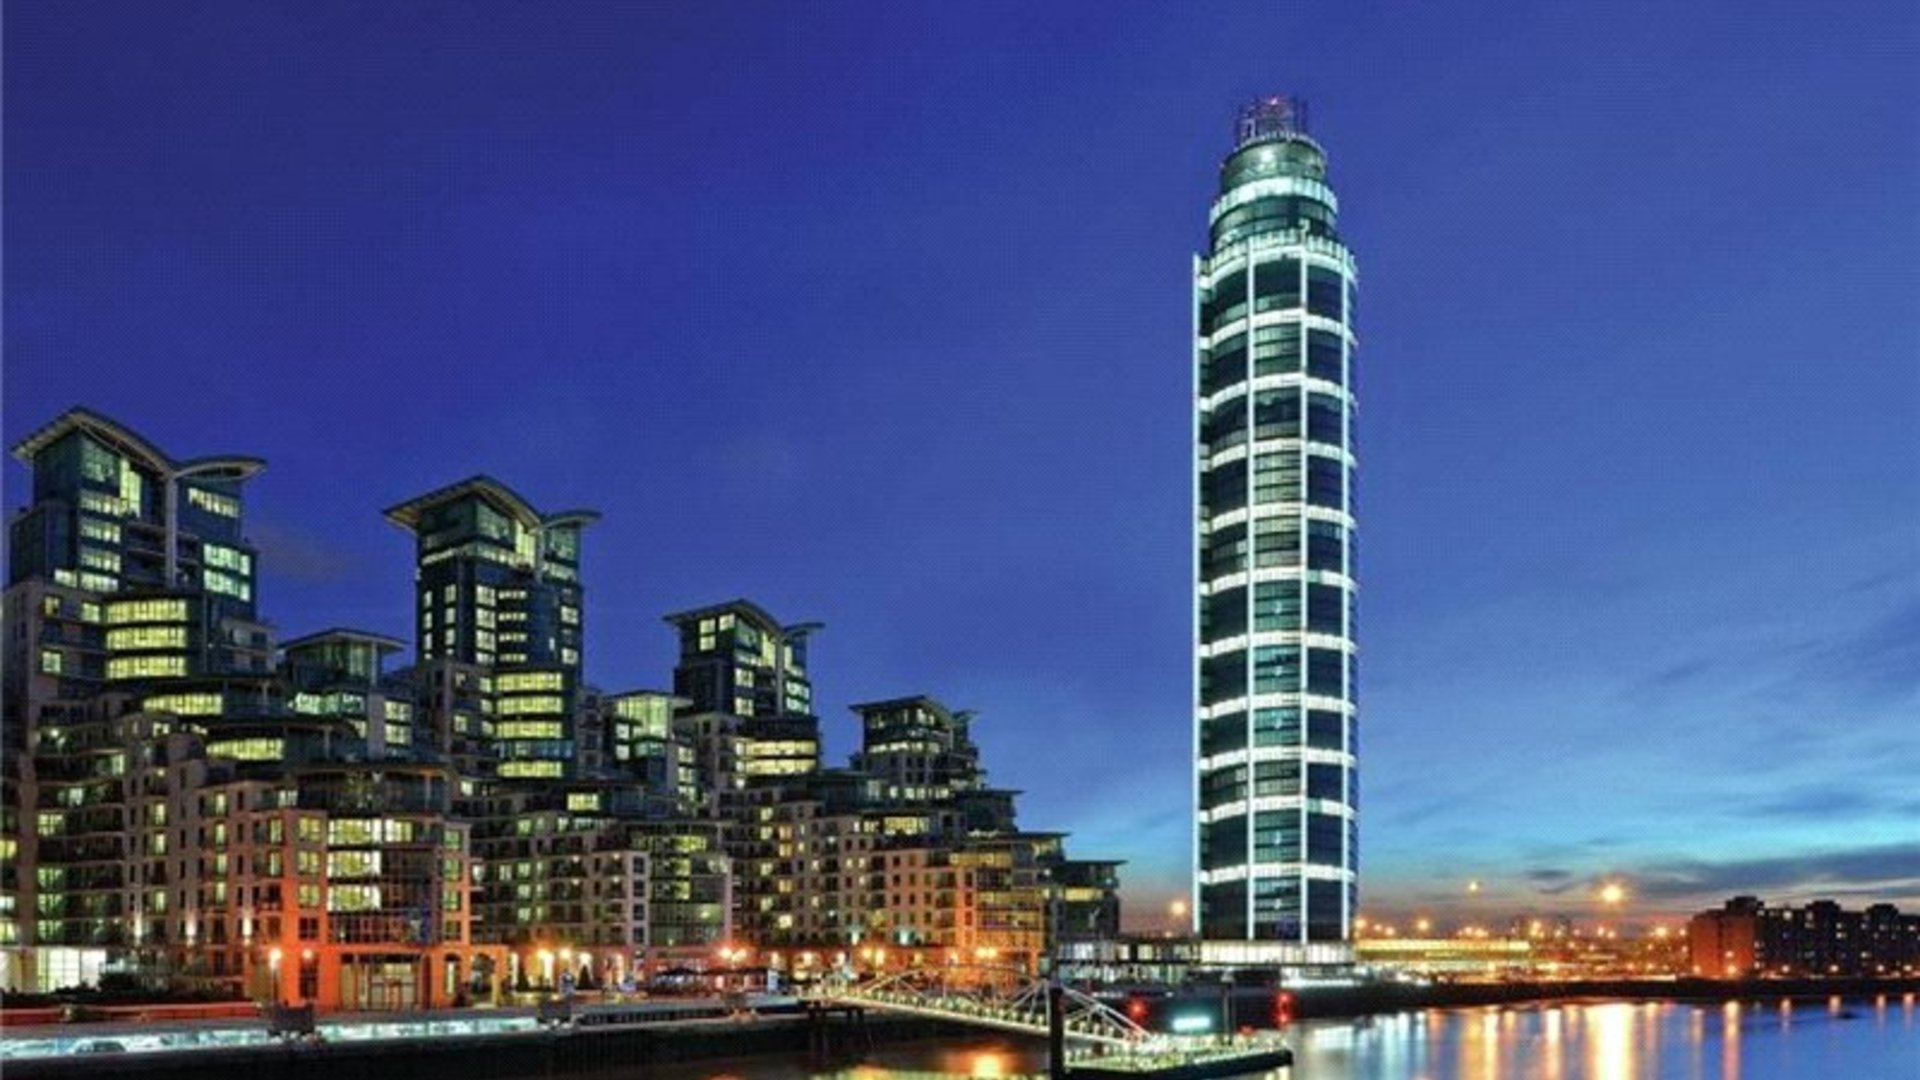 The Tower, One St George Wharf, London